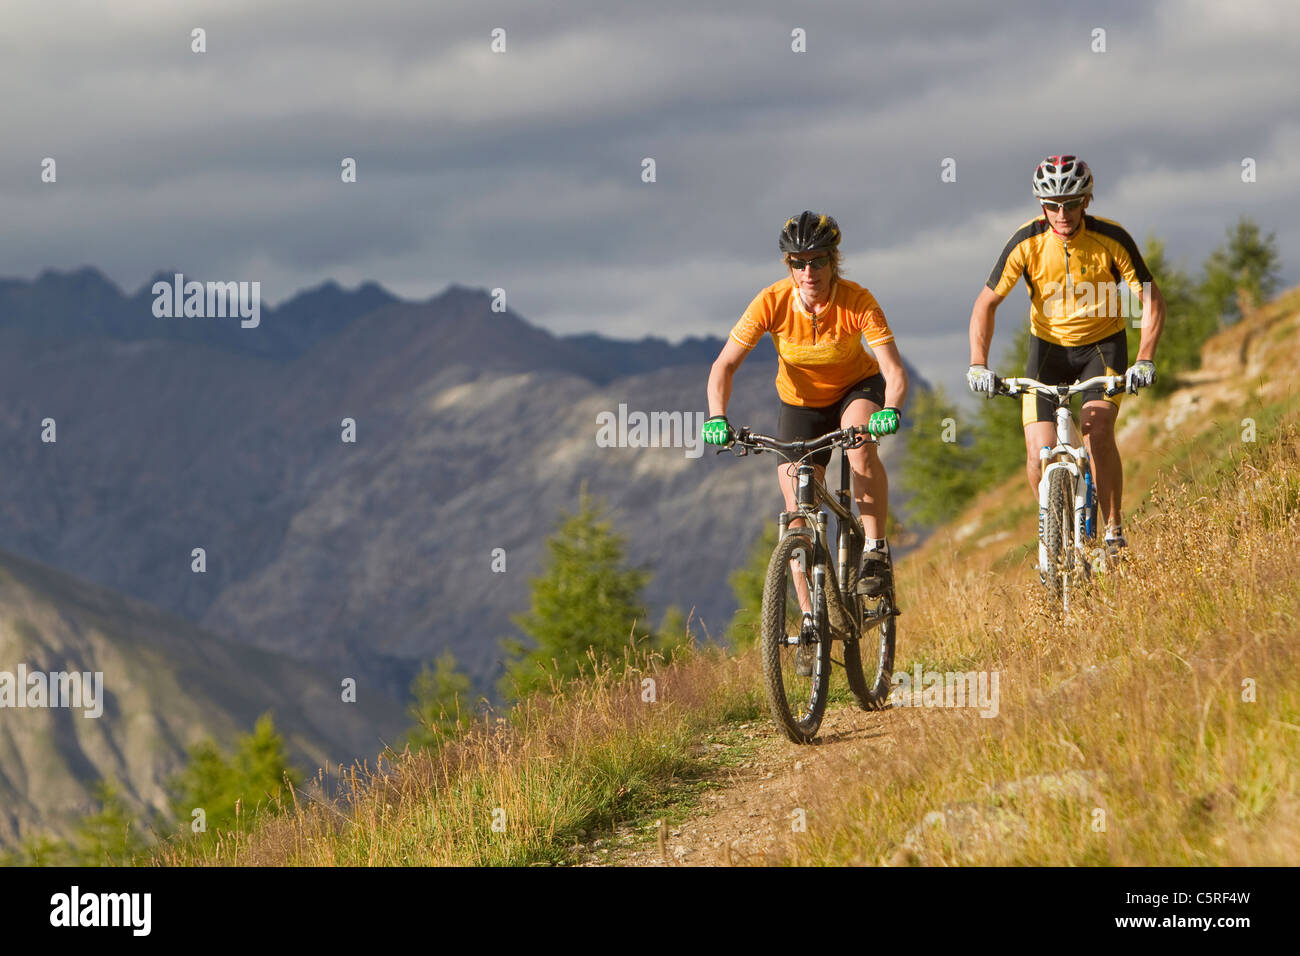 Italy, Livigno, View of man and woman riding mountain bike - Stock Image